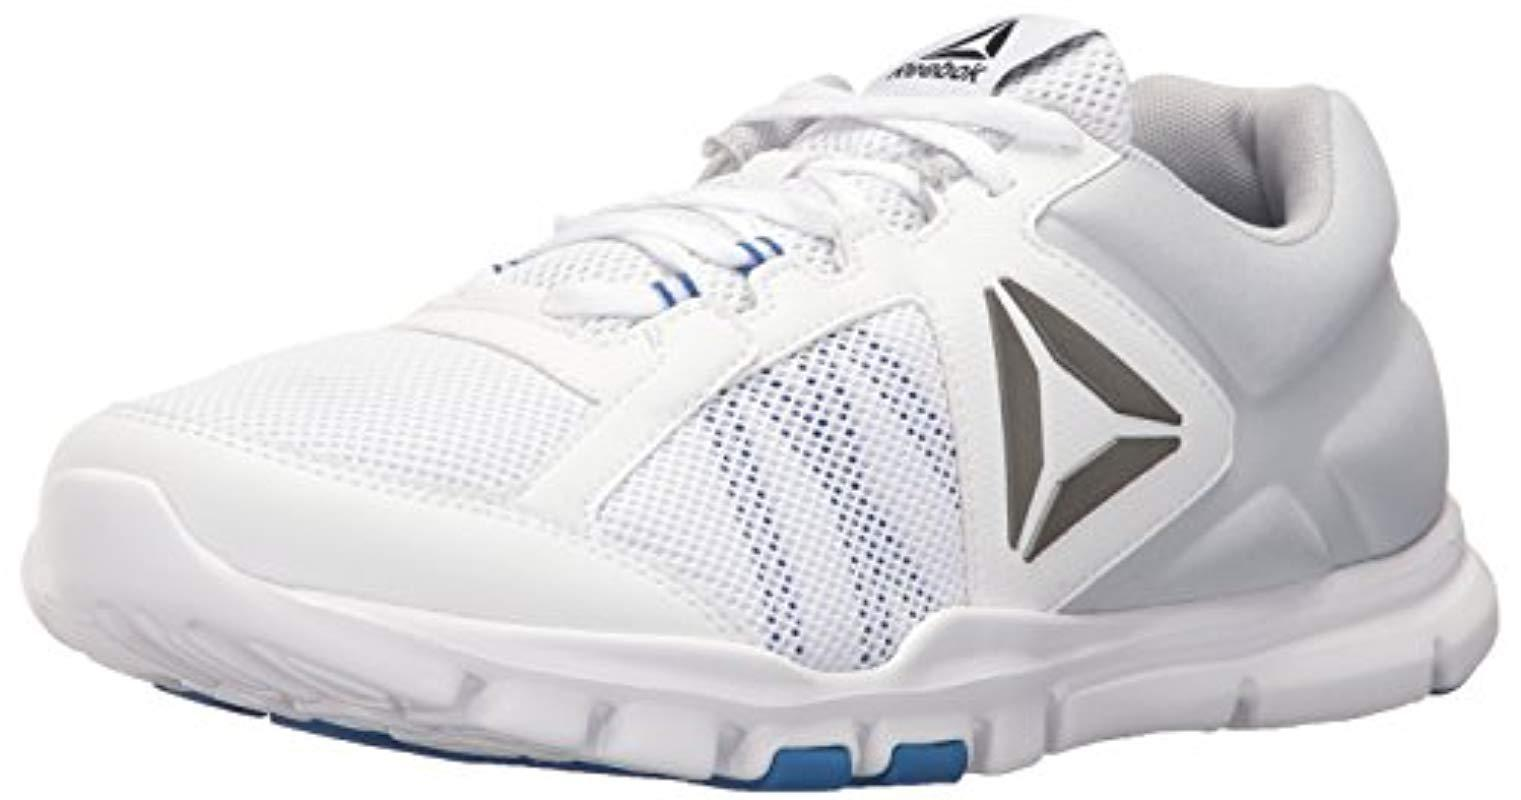 Lyst - Reebok Yourflex Train 9.0 Mt Running Shoe in White for Men ... c4caee60d